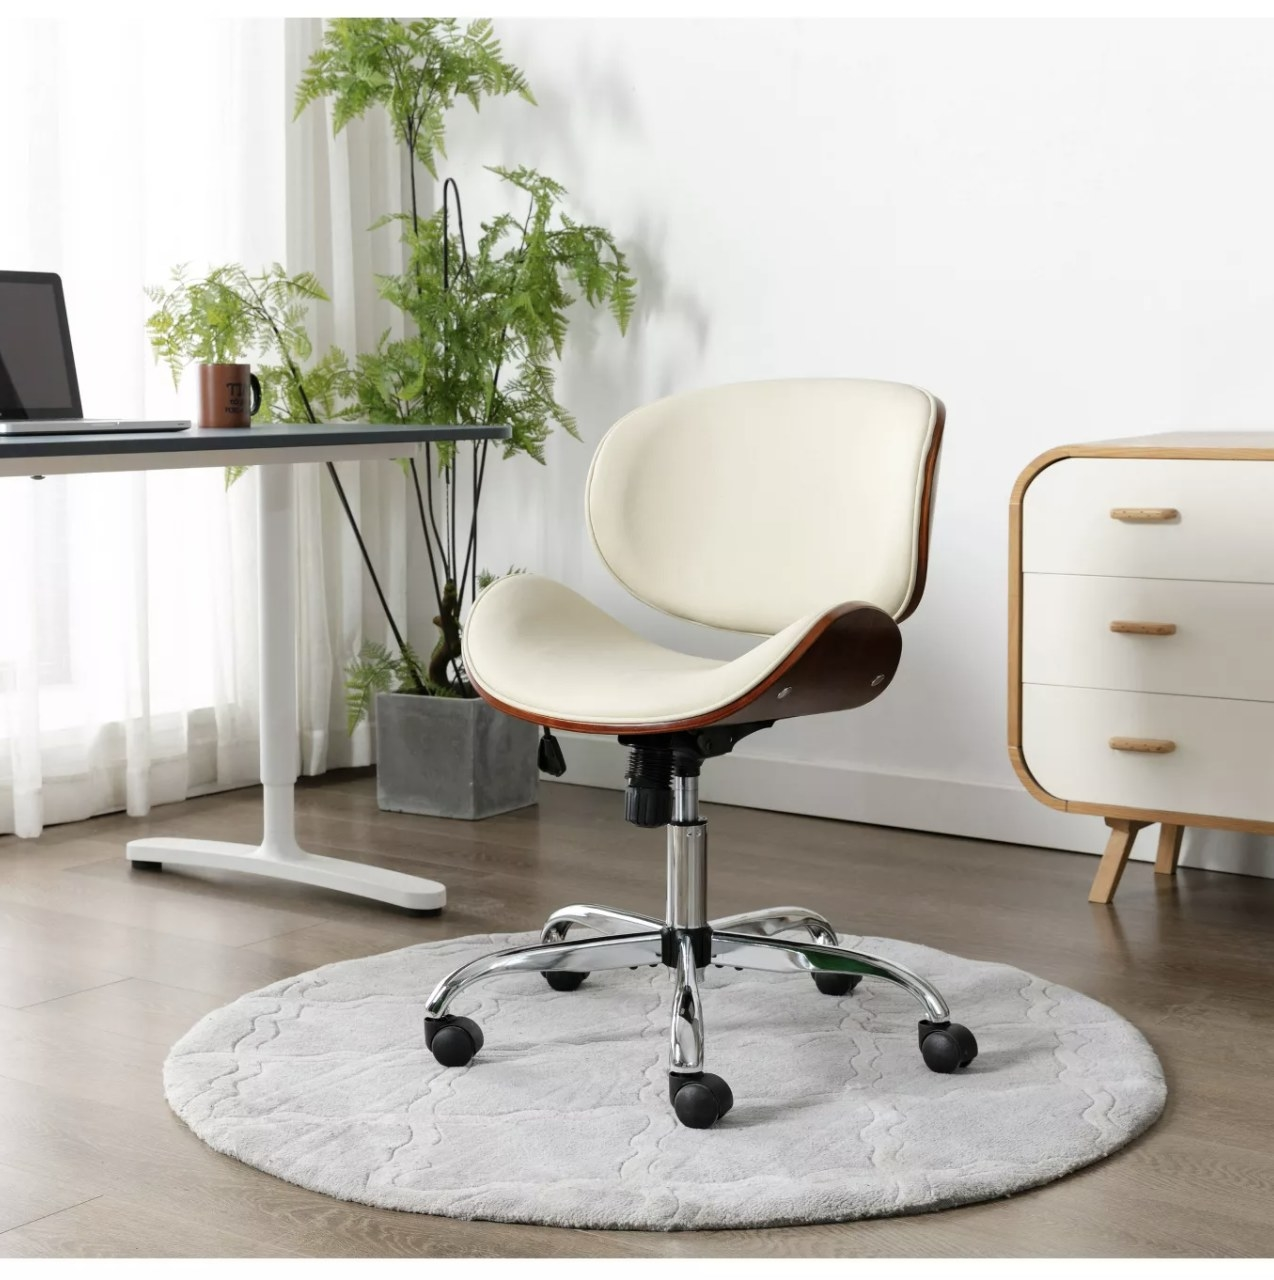 The office chair in a cream color